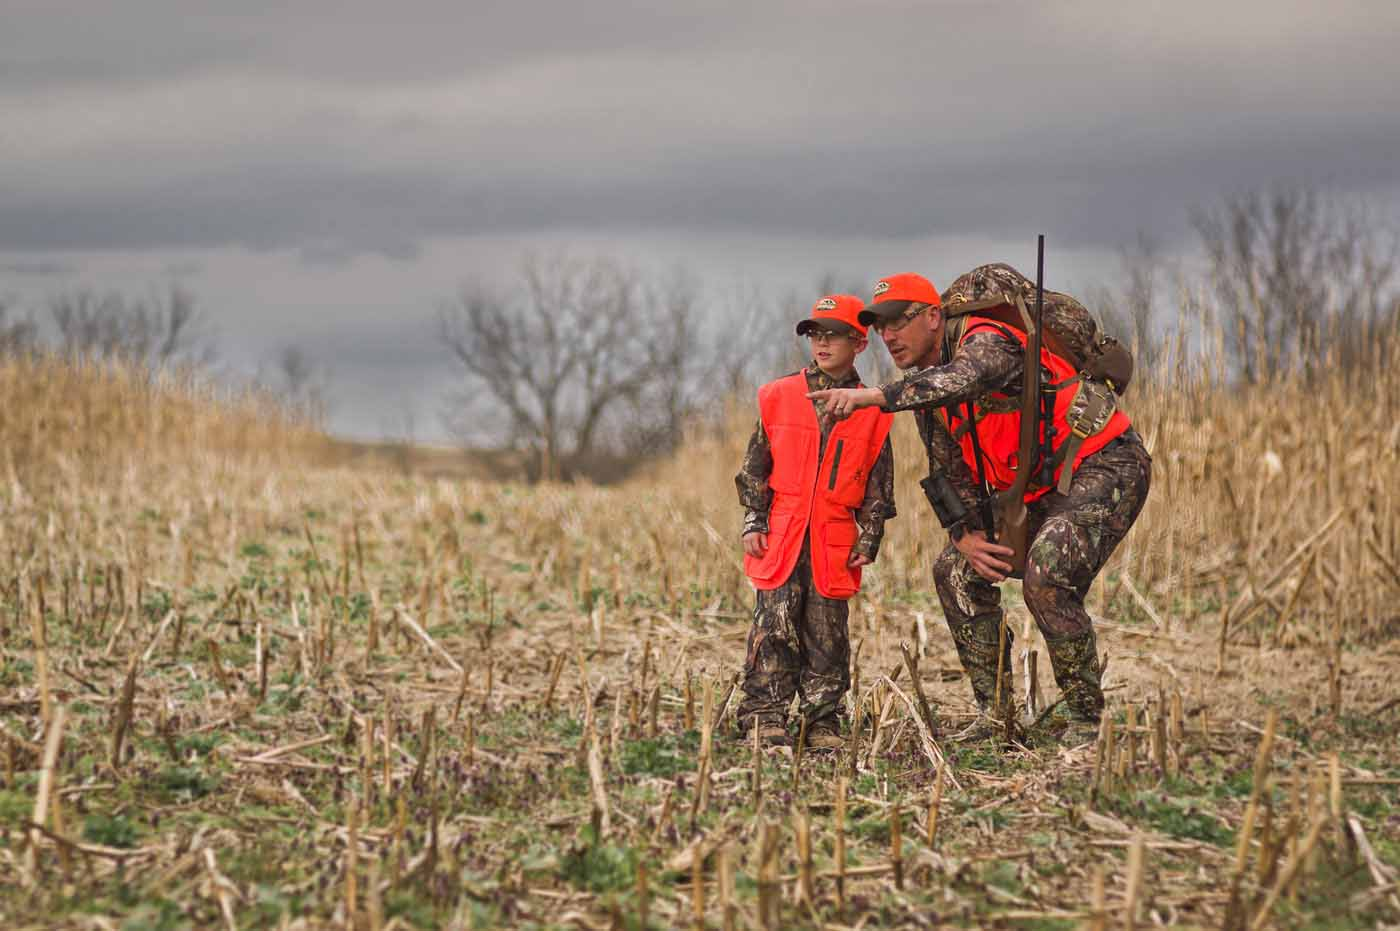 Mentored hunting programs are important.